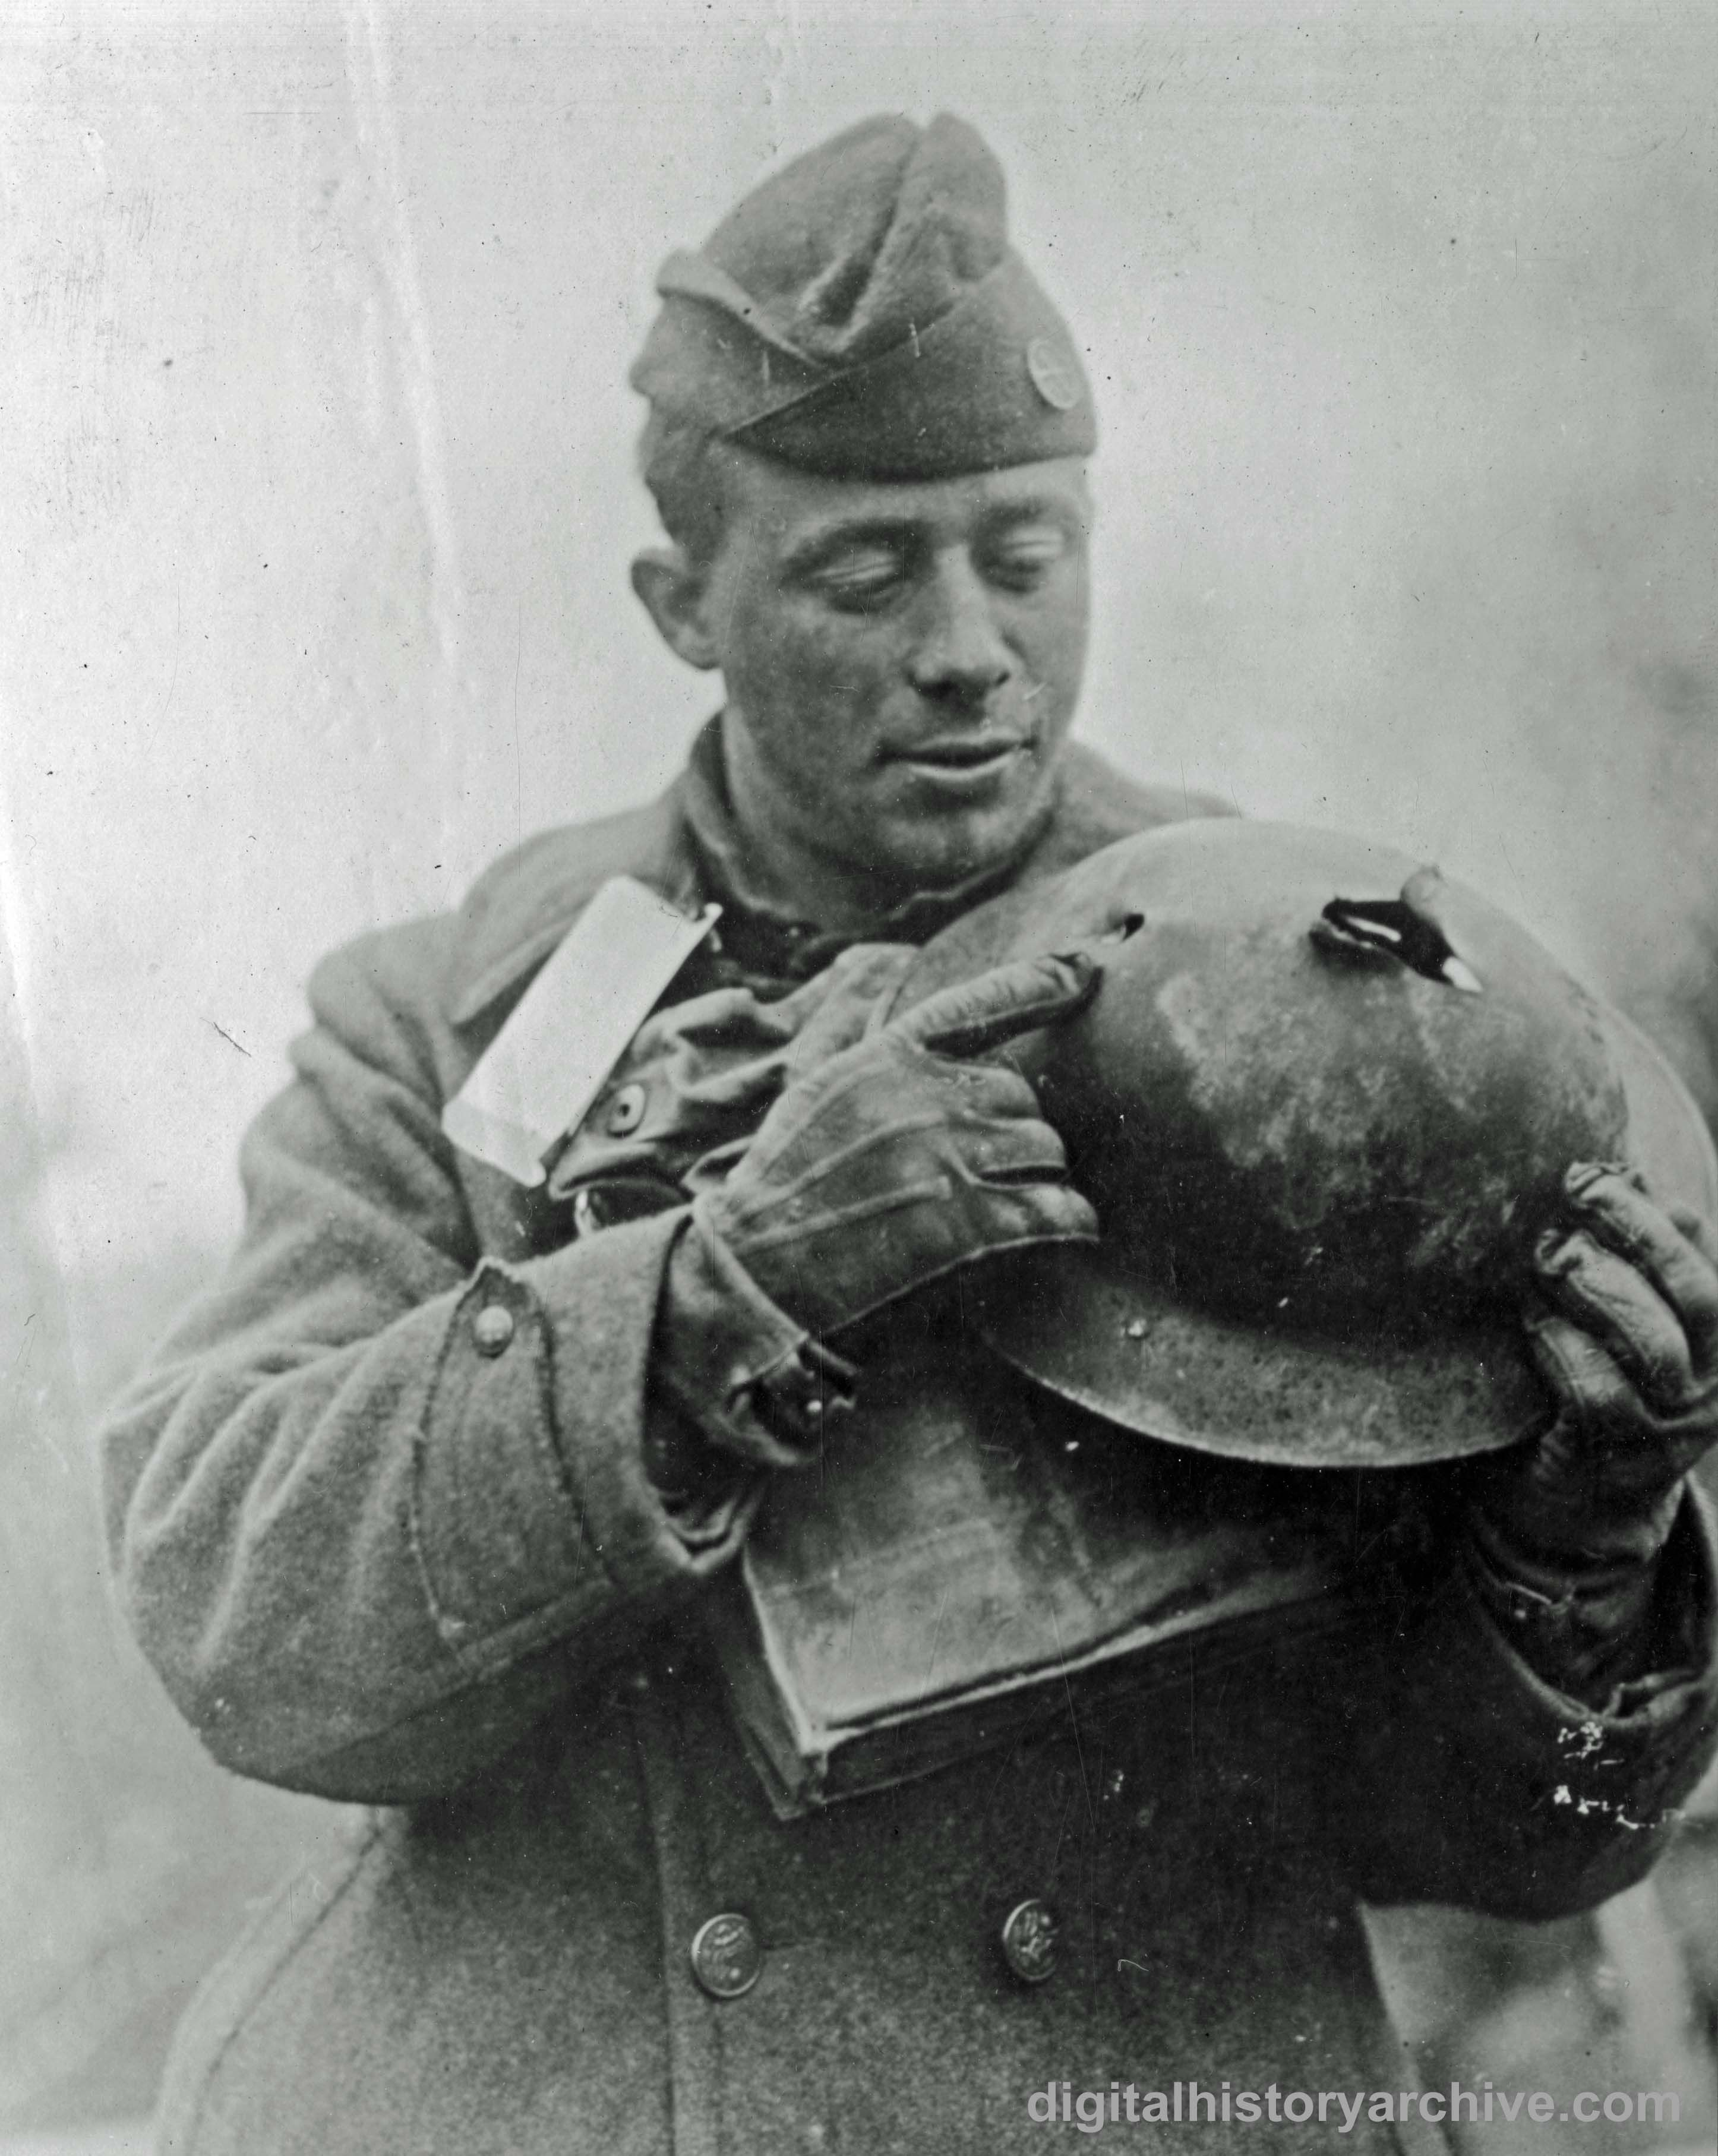 Wwi 1918 Us Army Private Mere Lipsky Of 2nd Battalion 329th Infantry 82nd Division Exhibits His Helmet Which Was World War I Ww1 History Military History